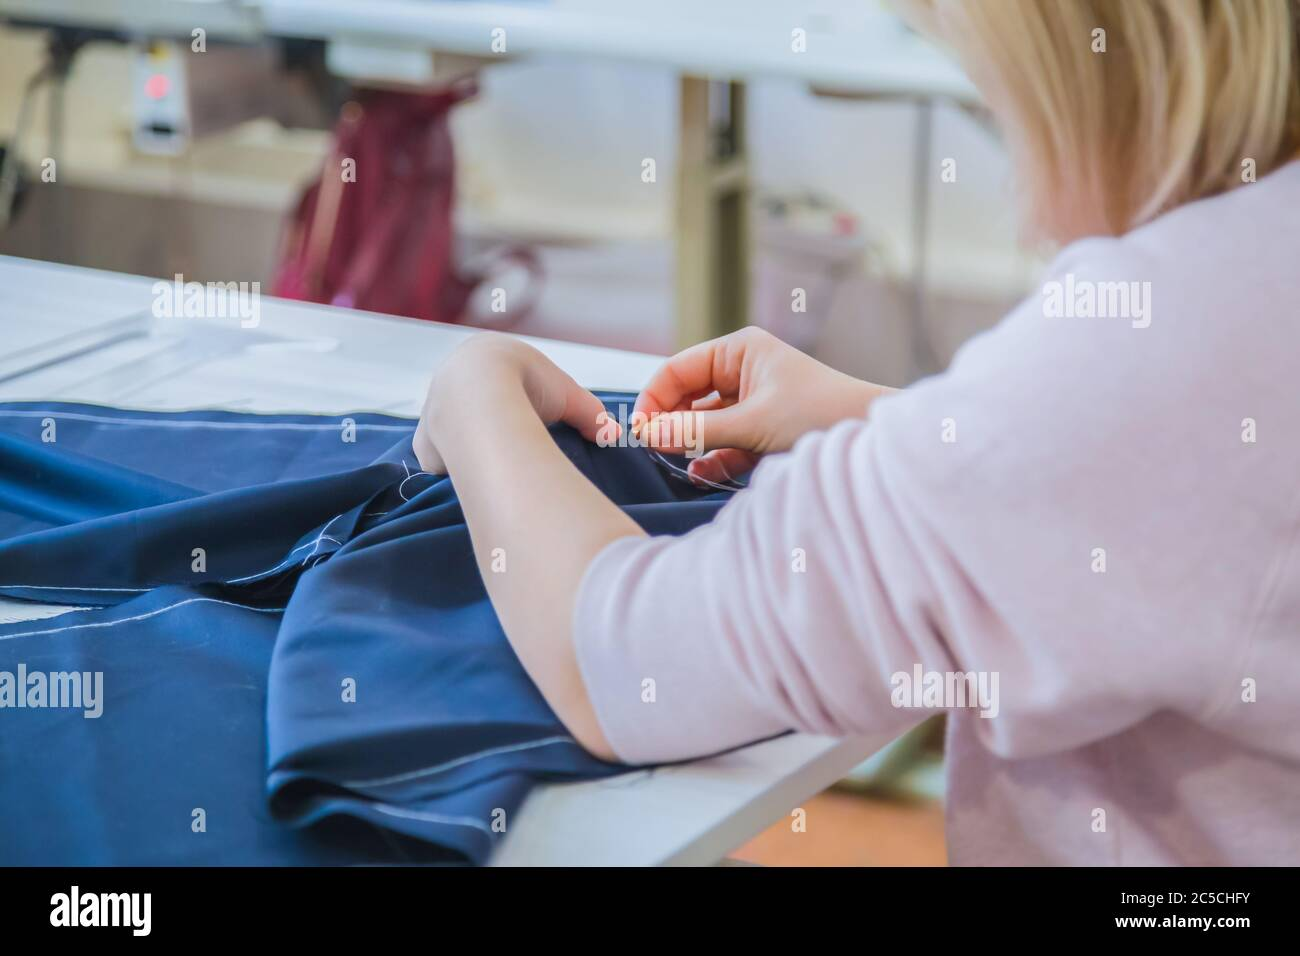 Professional Tailor Fashion Designer Working At Sewing Studio Preparation Process Fashion Clothing Small Business Industry Needlework Stock Photo Alamy